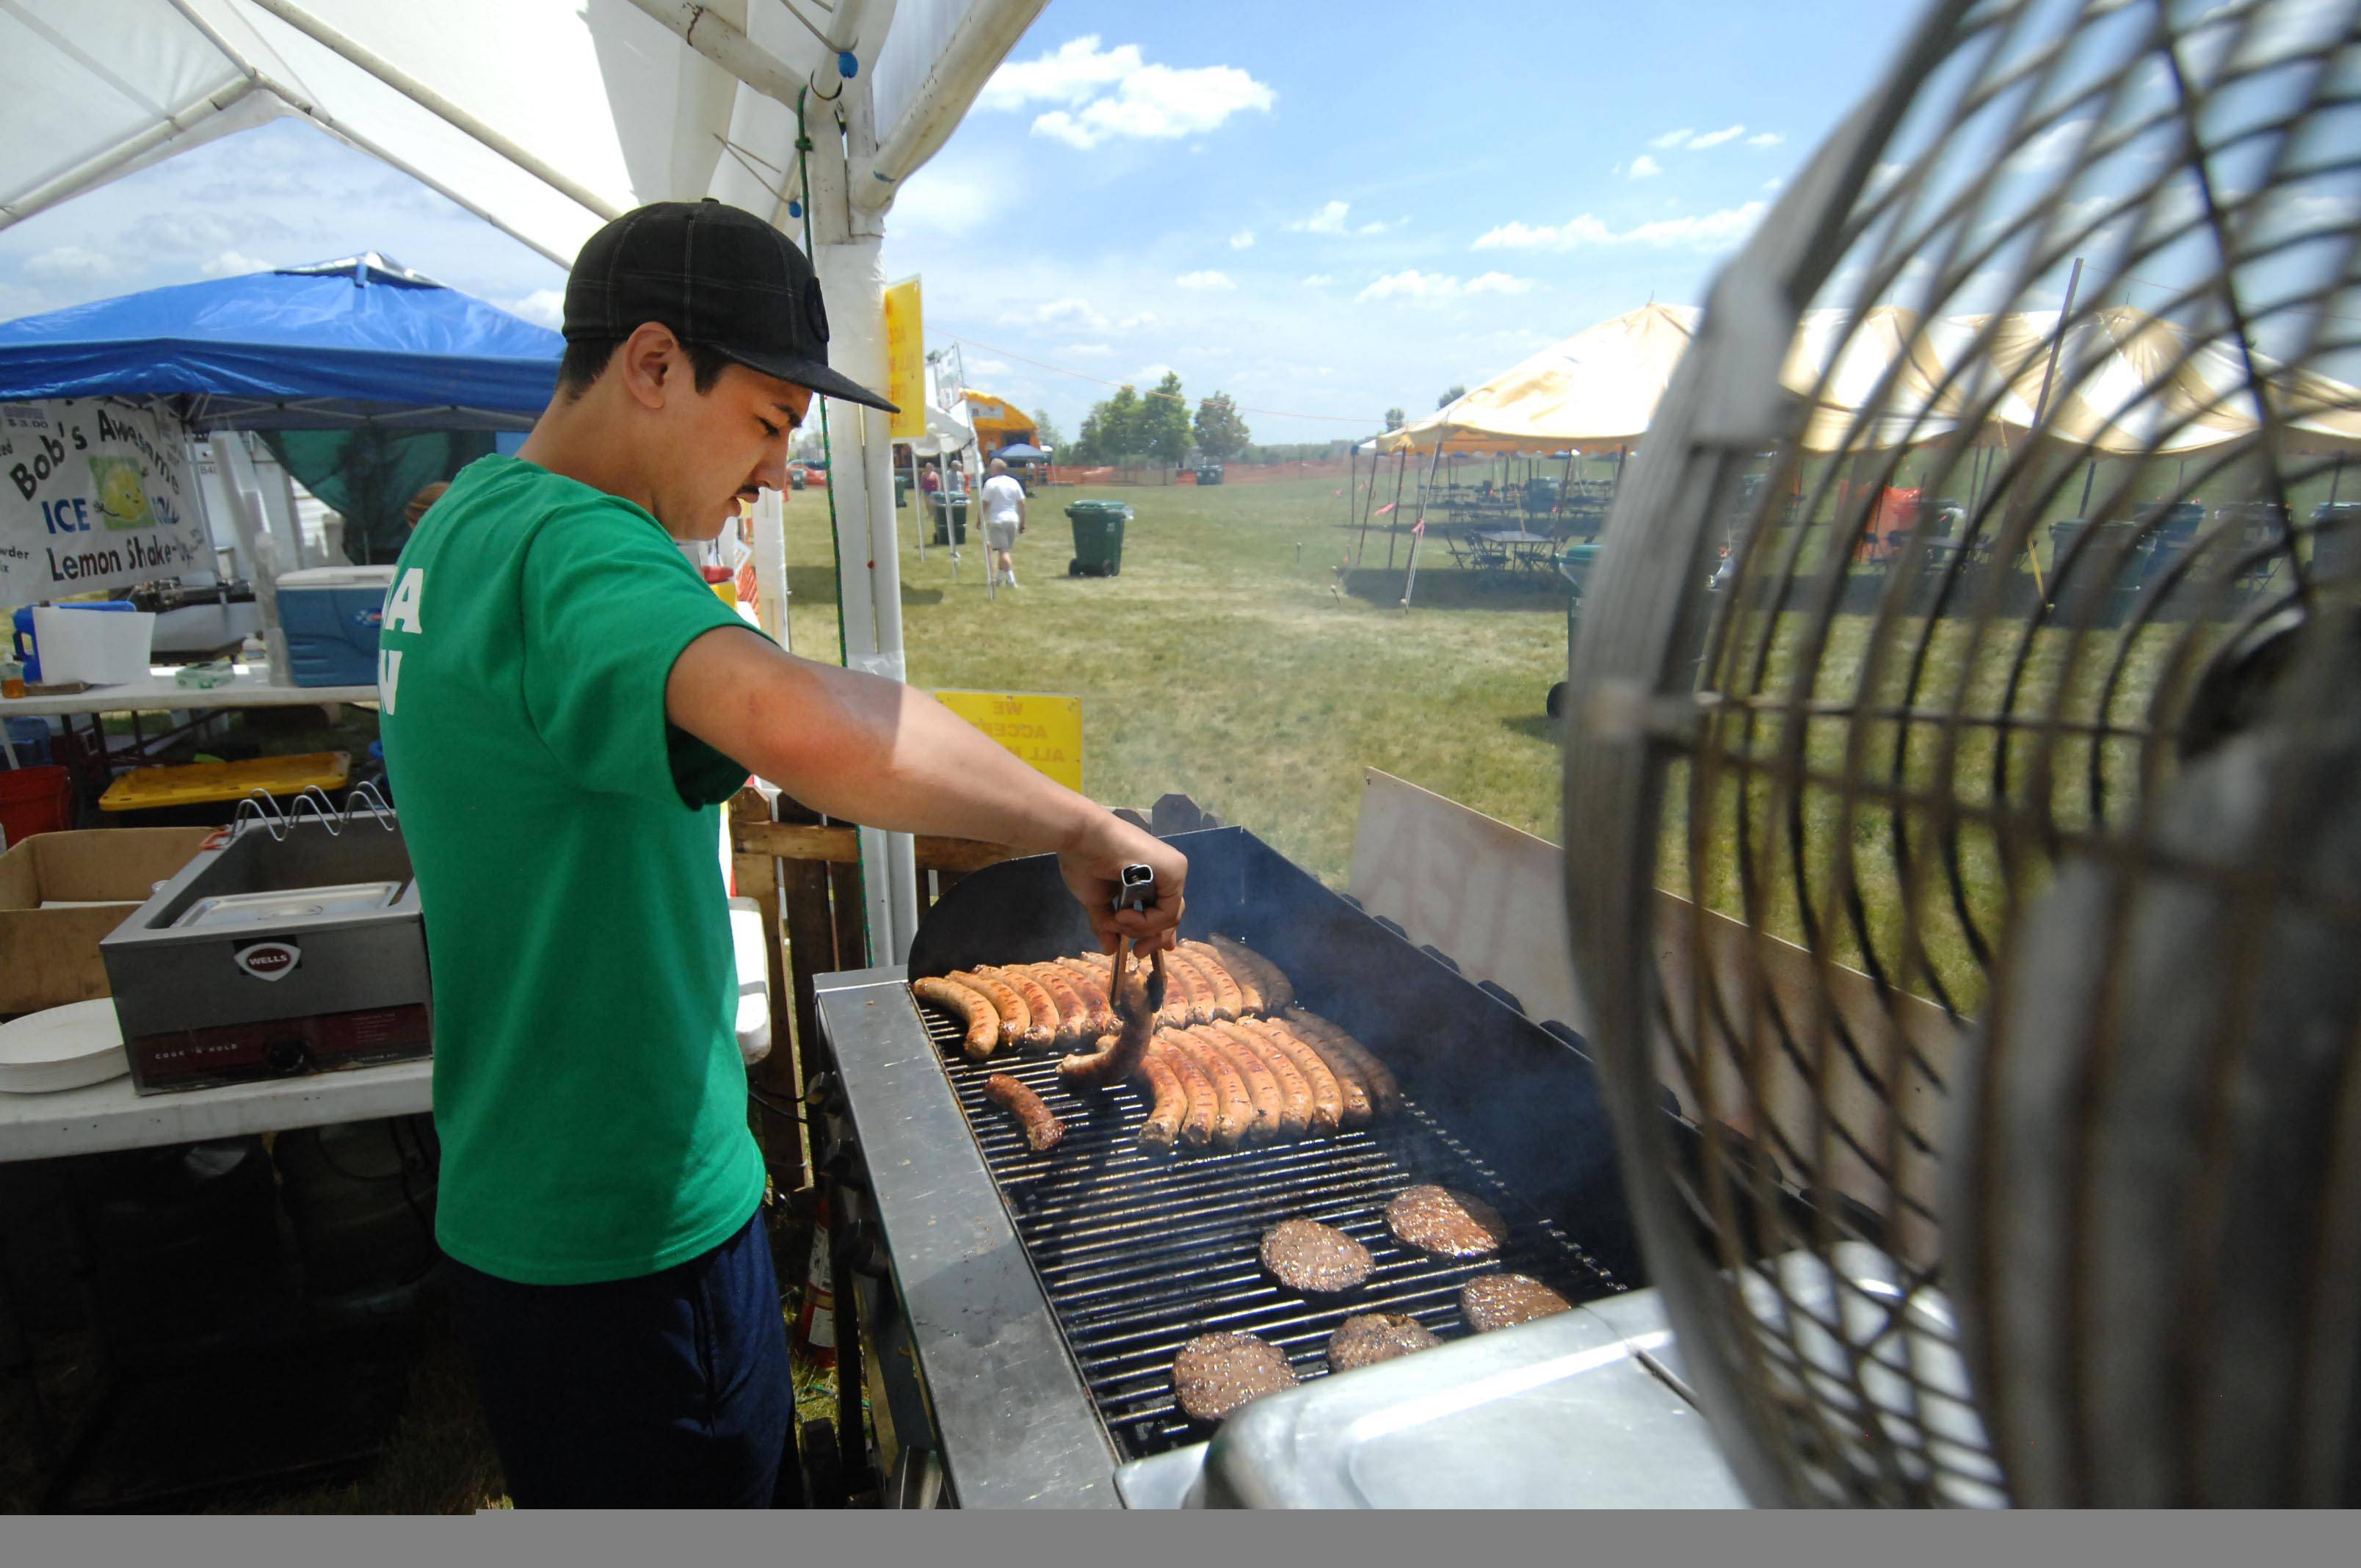 Danny Arroyo of Genoa Italian Concessions grills Italian sausage at a previous Gilberts Community Days festival.